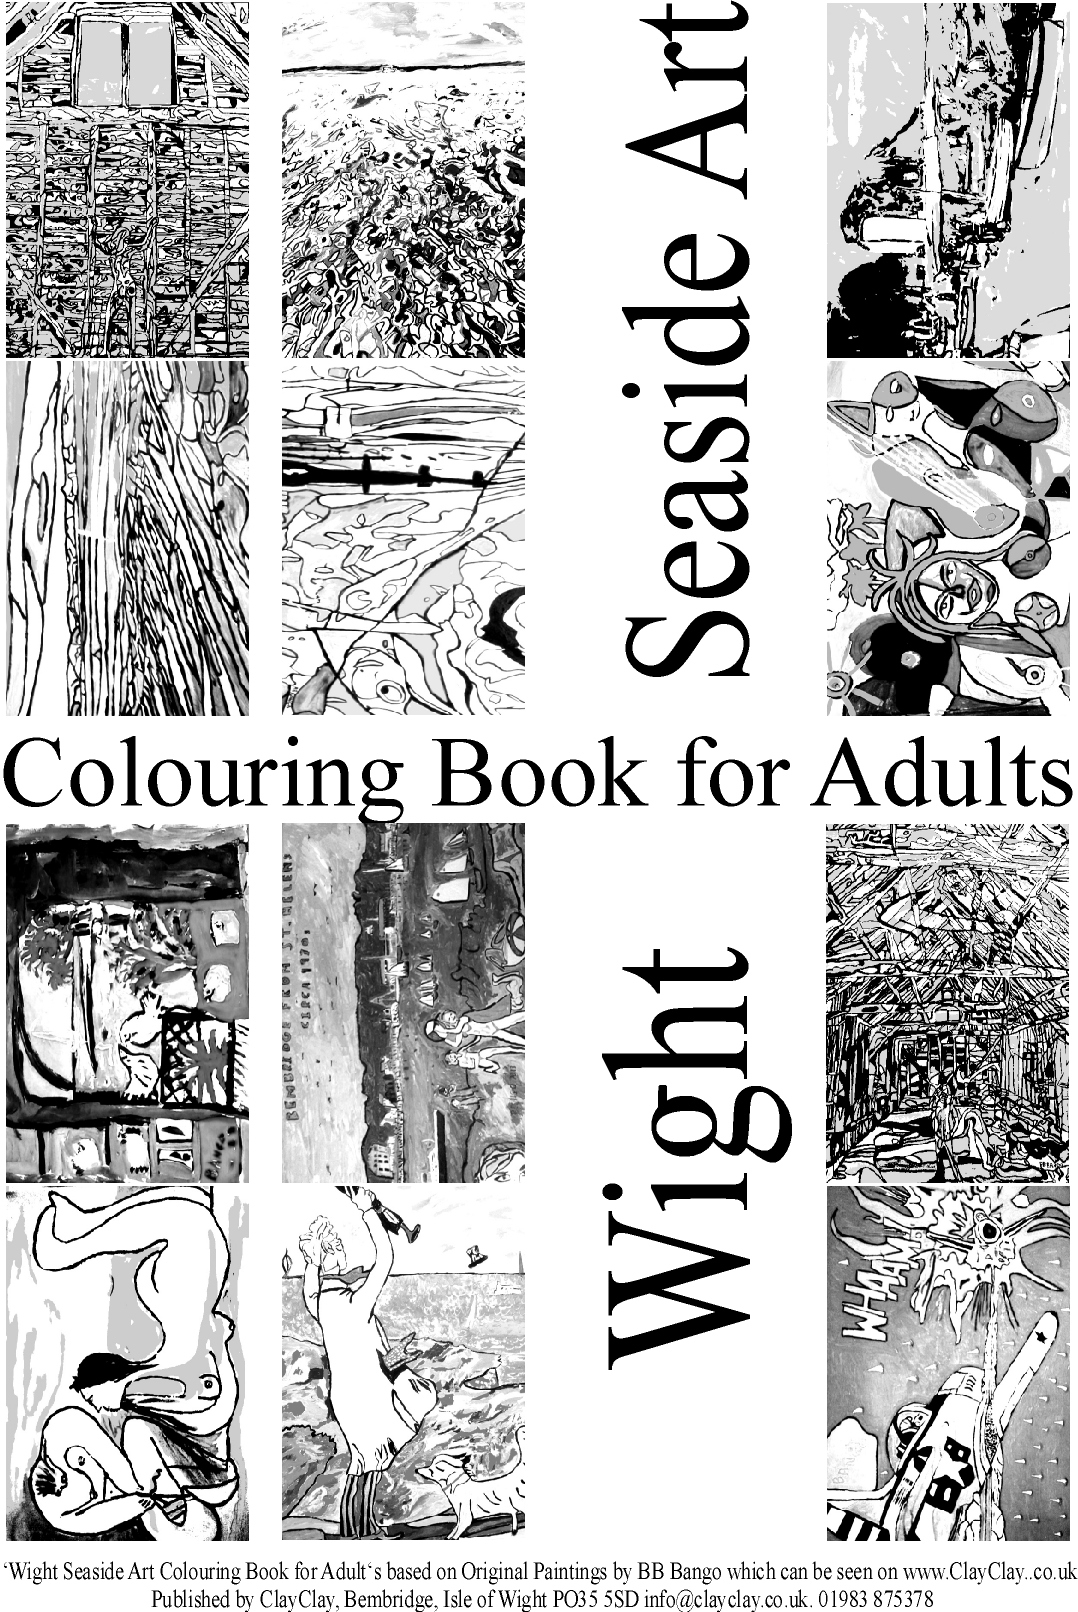 Seaside. 'Coloring (colouring) books for Adults' 12 paintings per book various themes. Use your own crayons, pastels, fibre tipped pens, ink, watercolour, acrylic or oil paints. £5 per book plus £2.50 postage and packing. E mail us your requirements